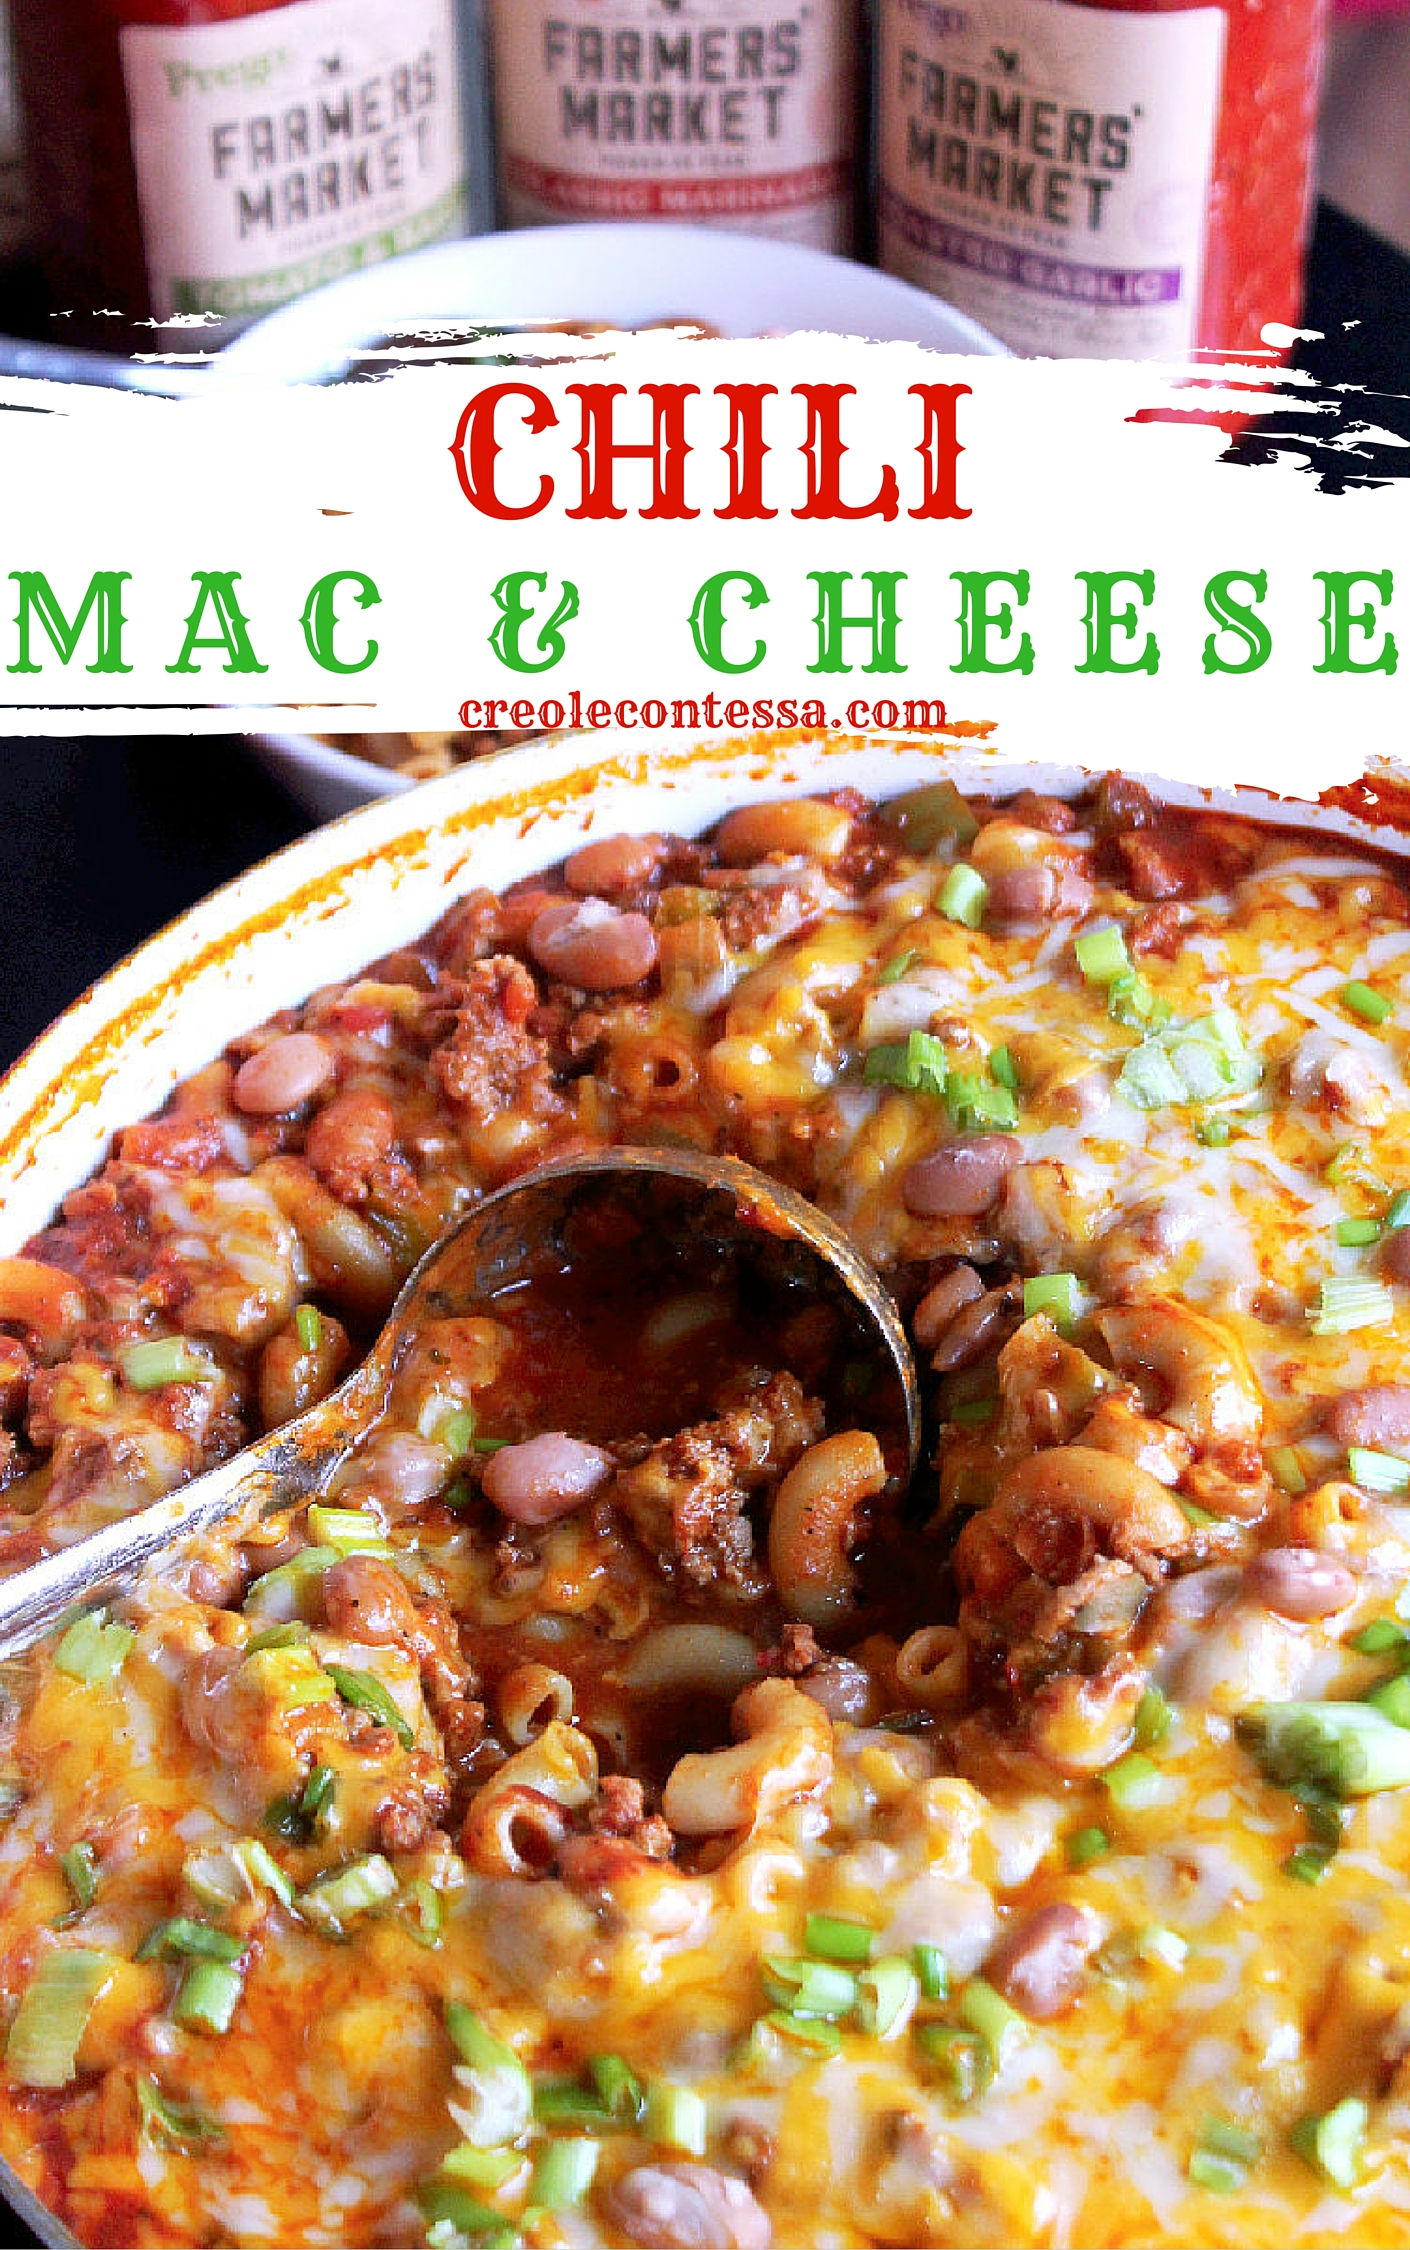 Chili Mac & Cheese with Prego® Farmers' Market-Creole Contessa